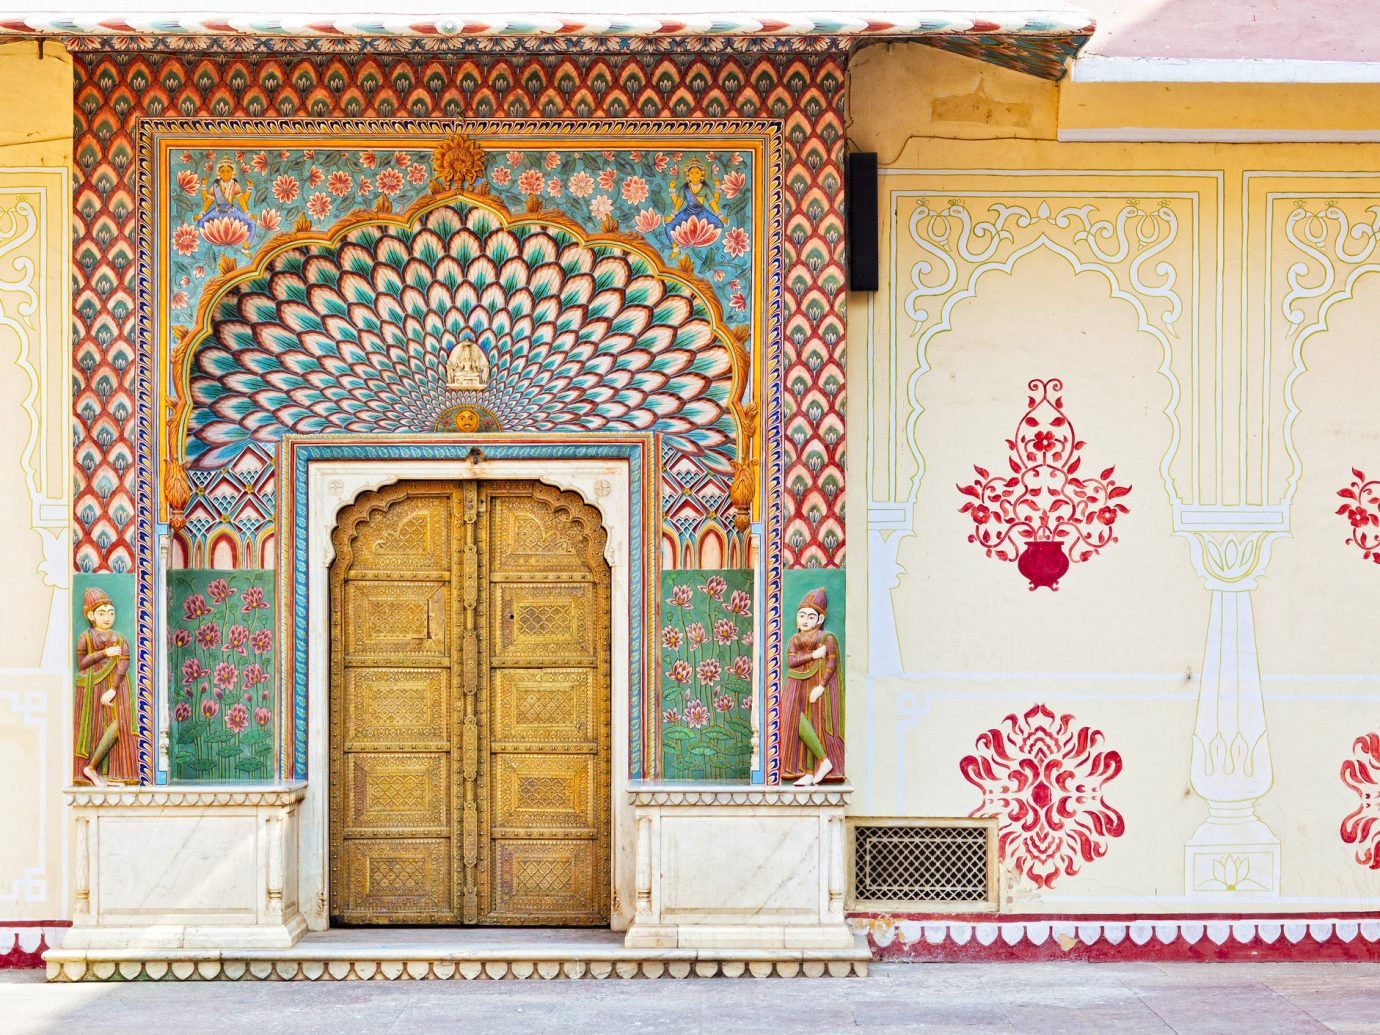 Offbeat Travel Tips wall interior design door picture frame window arch decorated colorful painted painting